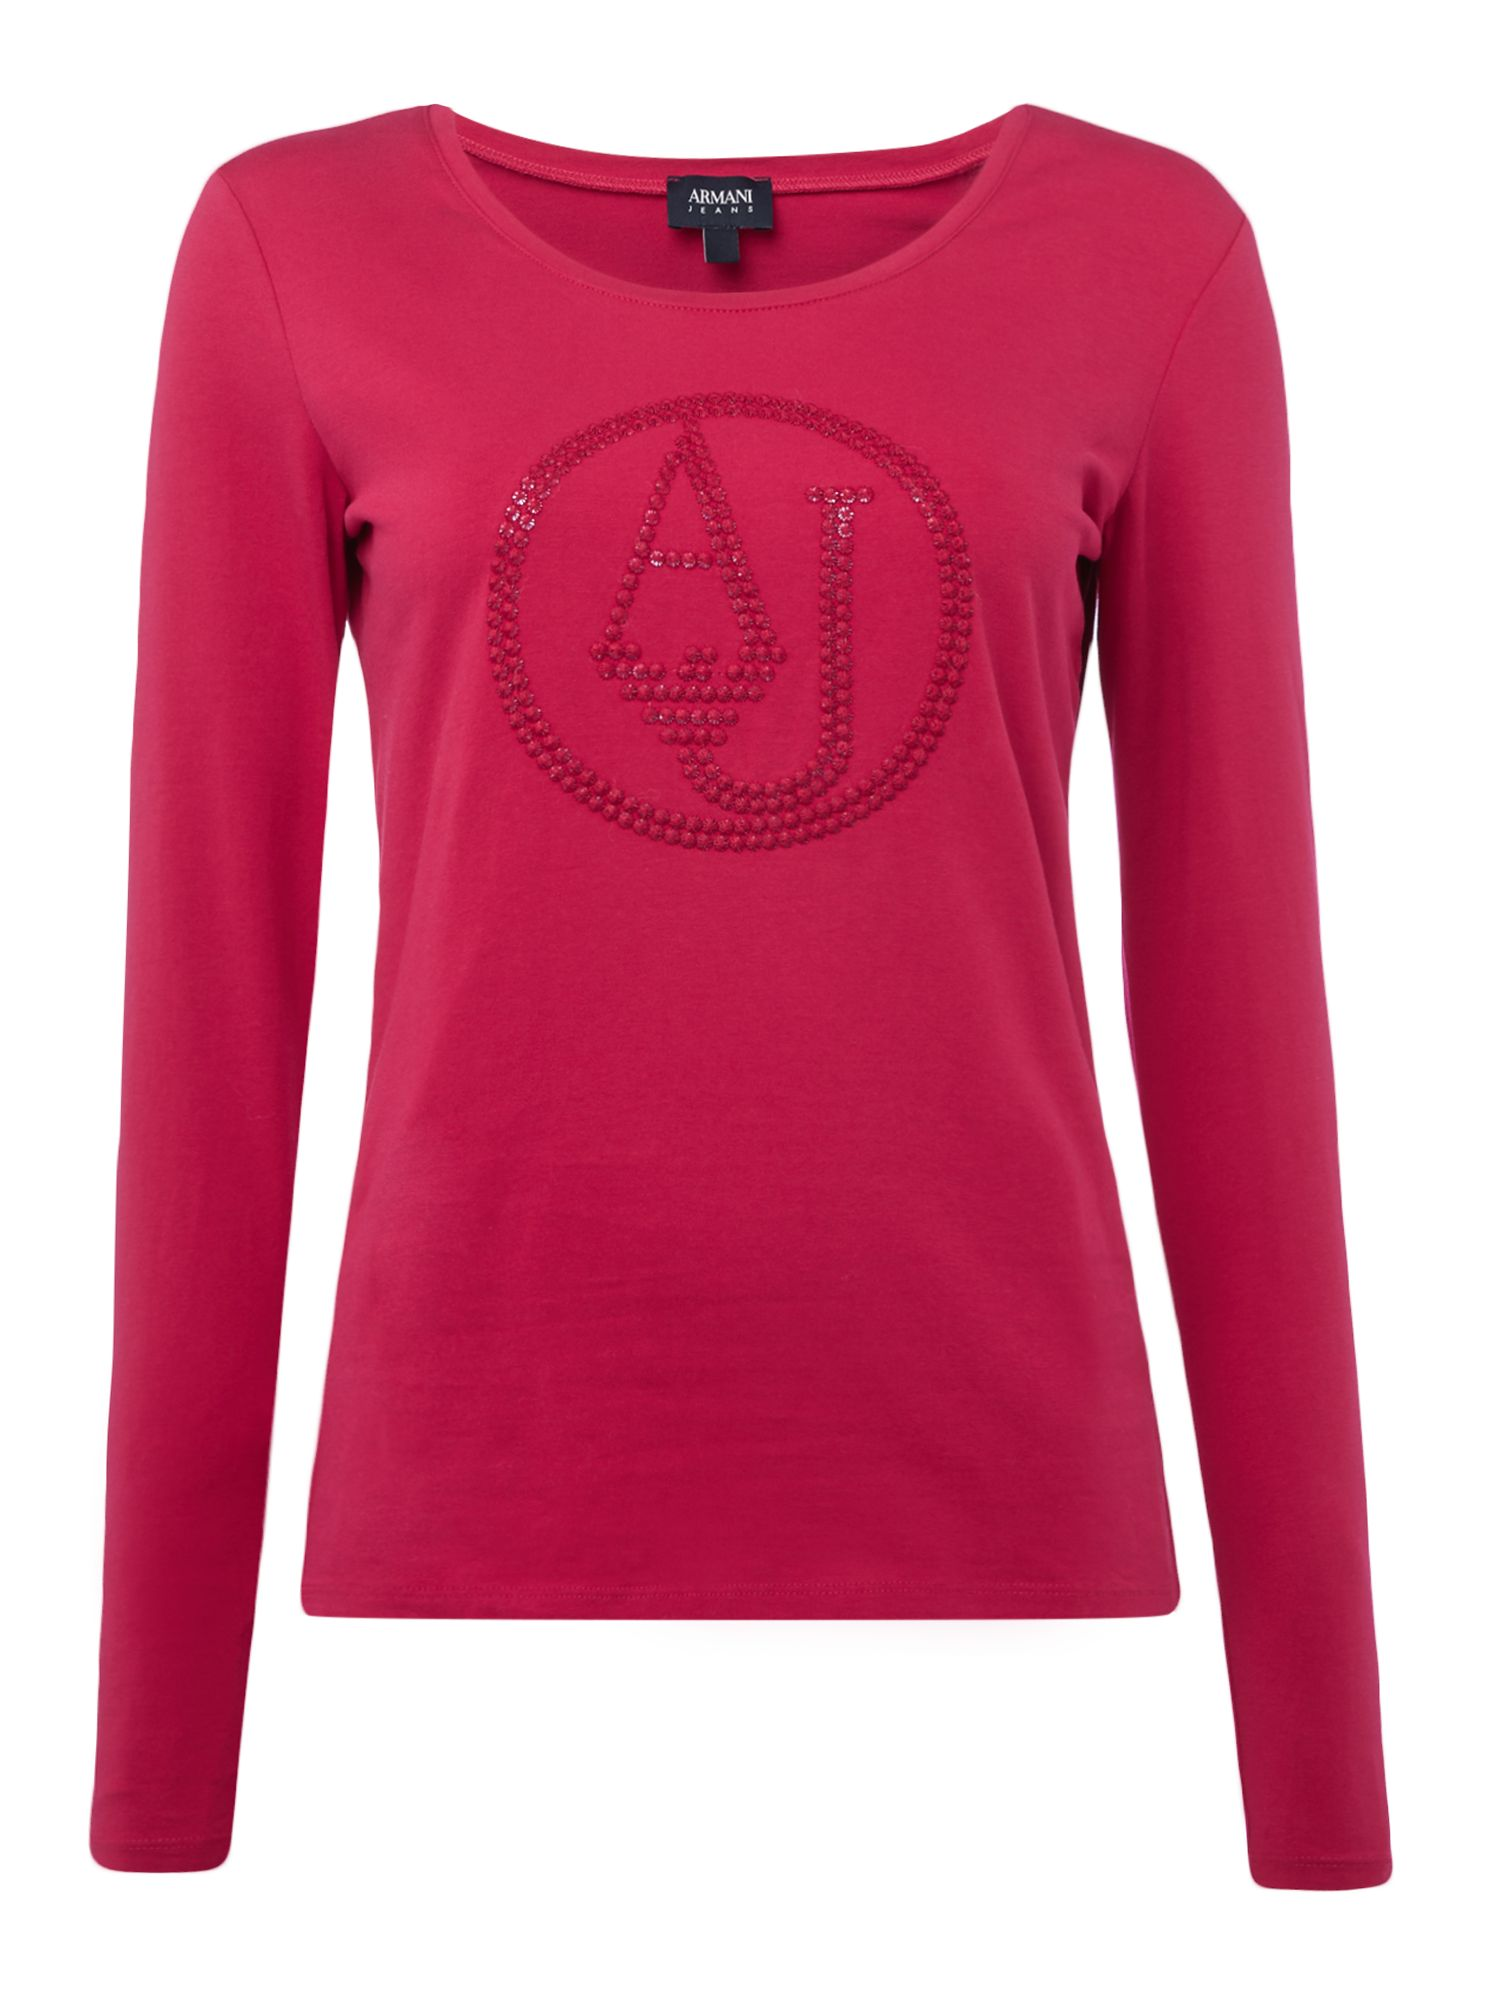 Armani Jeans Crew neck logo top in rosso ciliegia, Pink